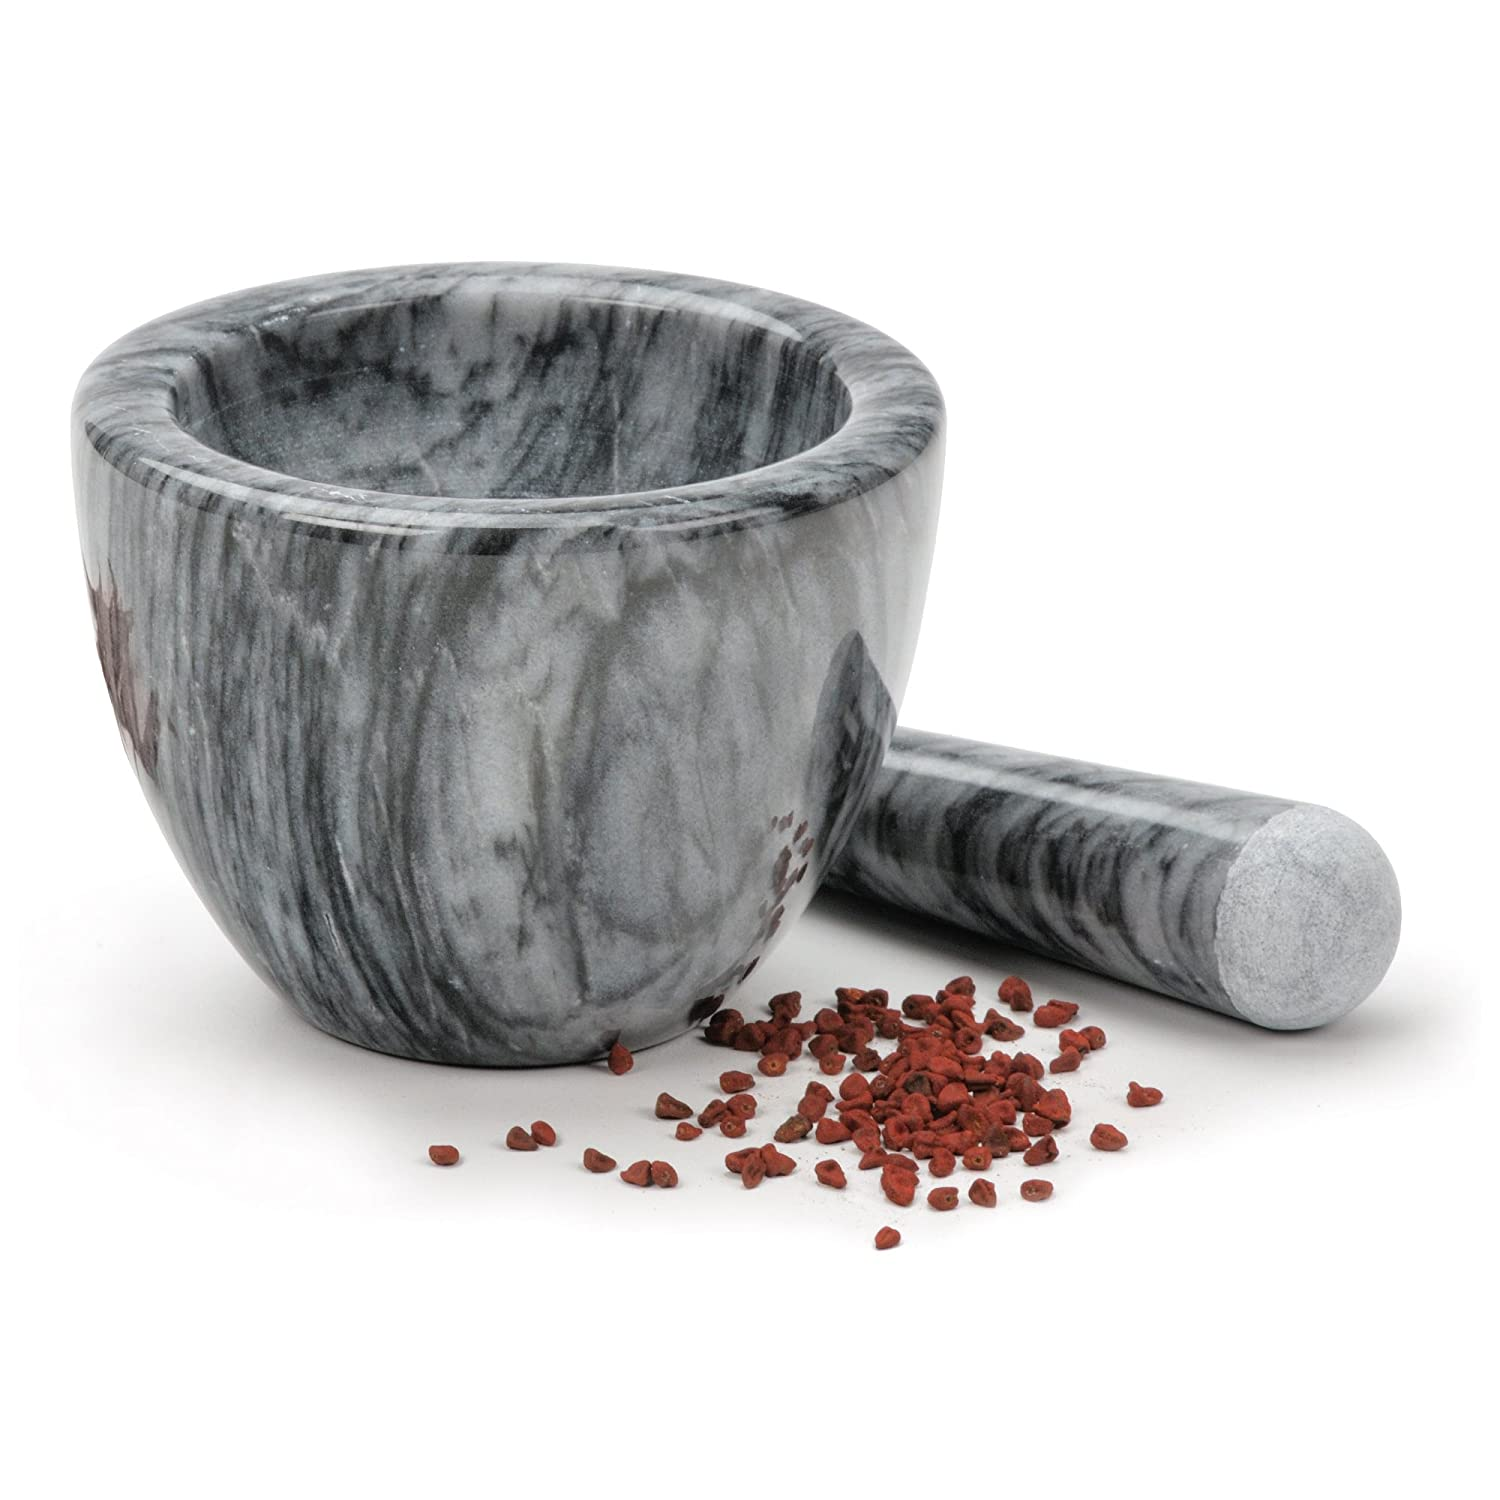 6 best mortar and pestle for grinding spices 2018 updated guide. Black Bedroom Furniture Sets. Home Design Ideas